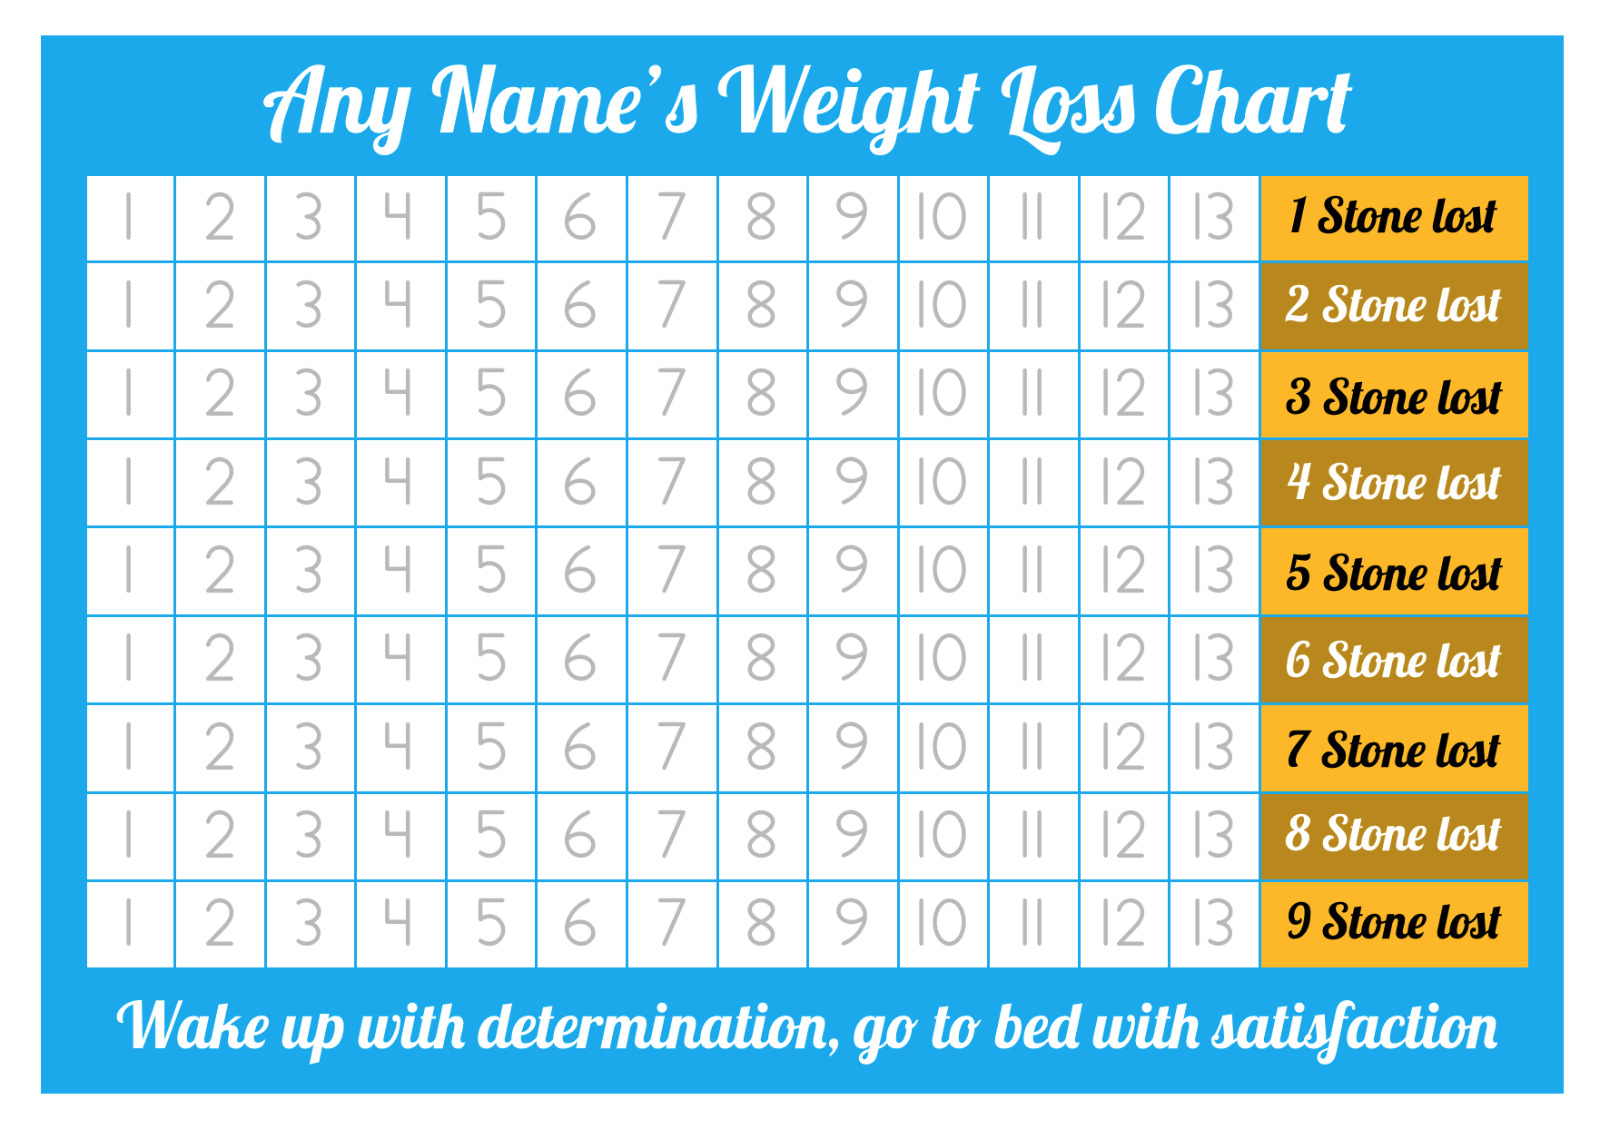 Personalised weight loss chart 9 stone laminated with 2 sheets resntentobalflowflowcomponenttechnicalissues nvjuhfo Image collections